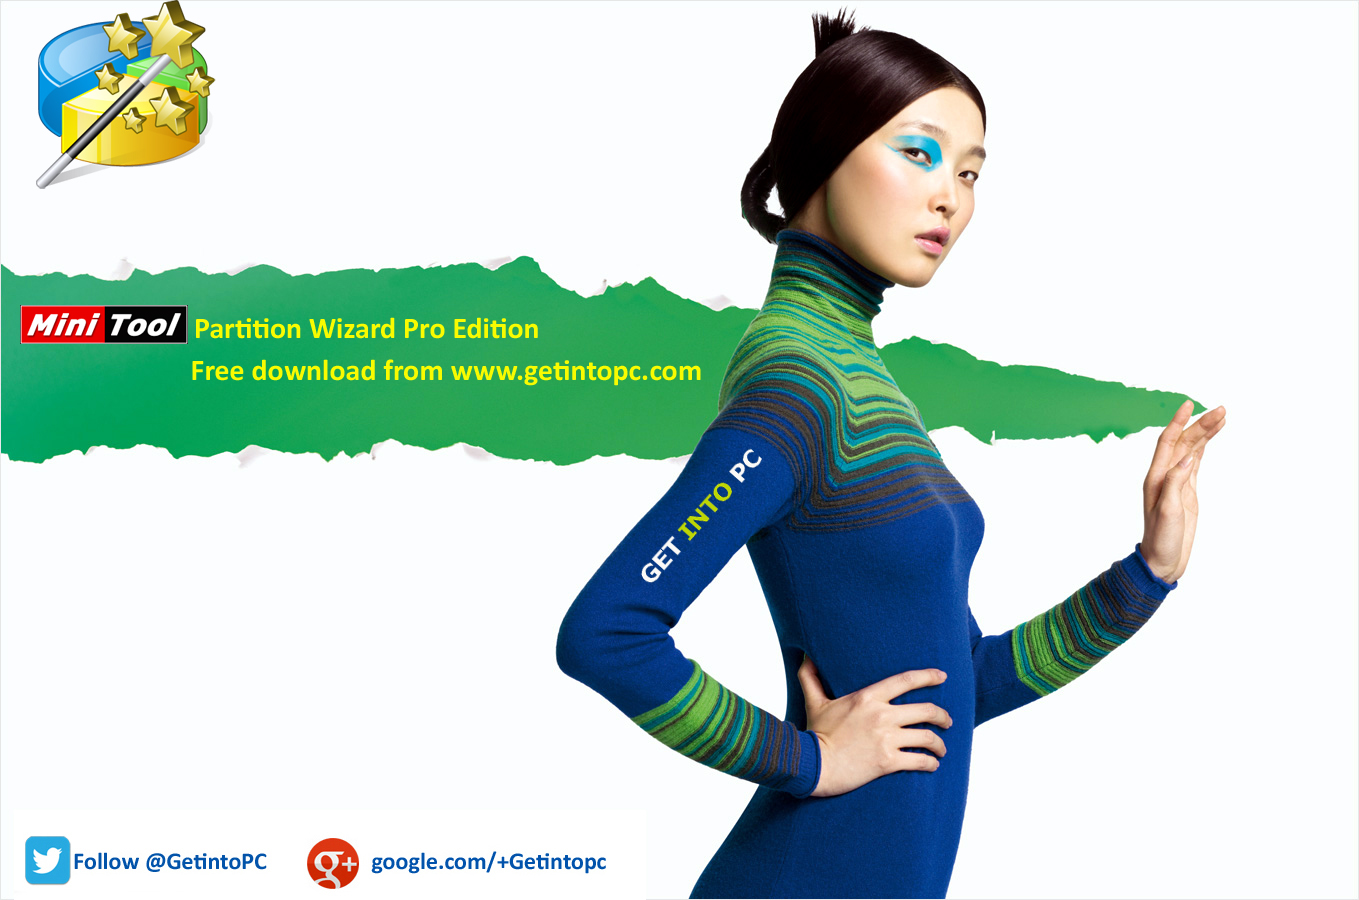 MiniTool Partition Wizard Pro Edition Free Download